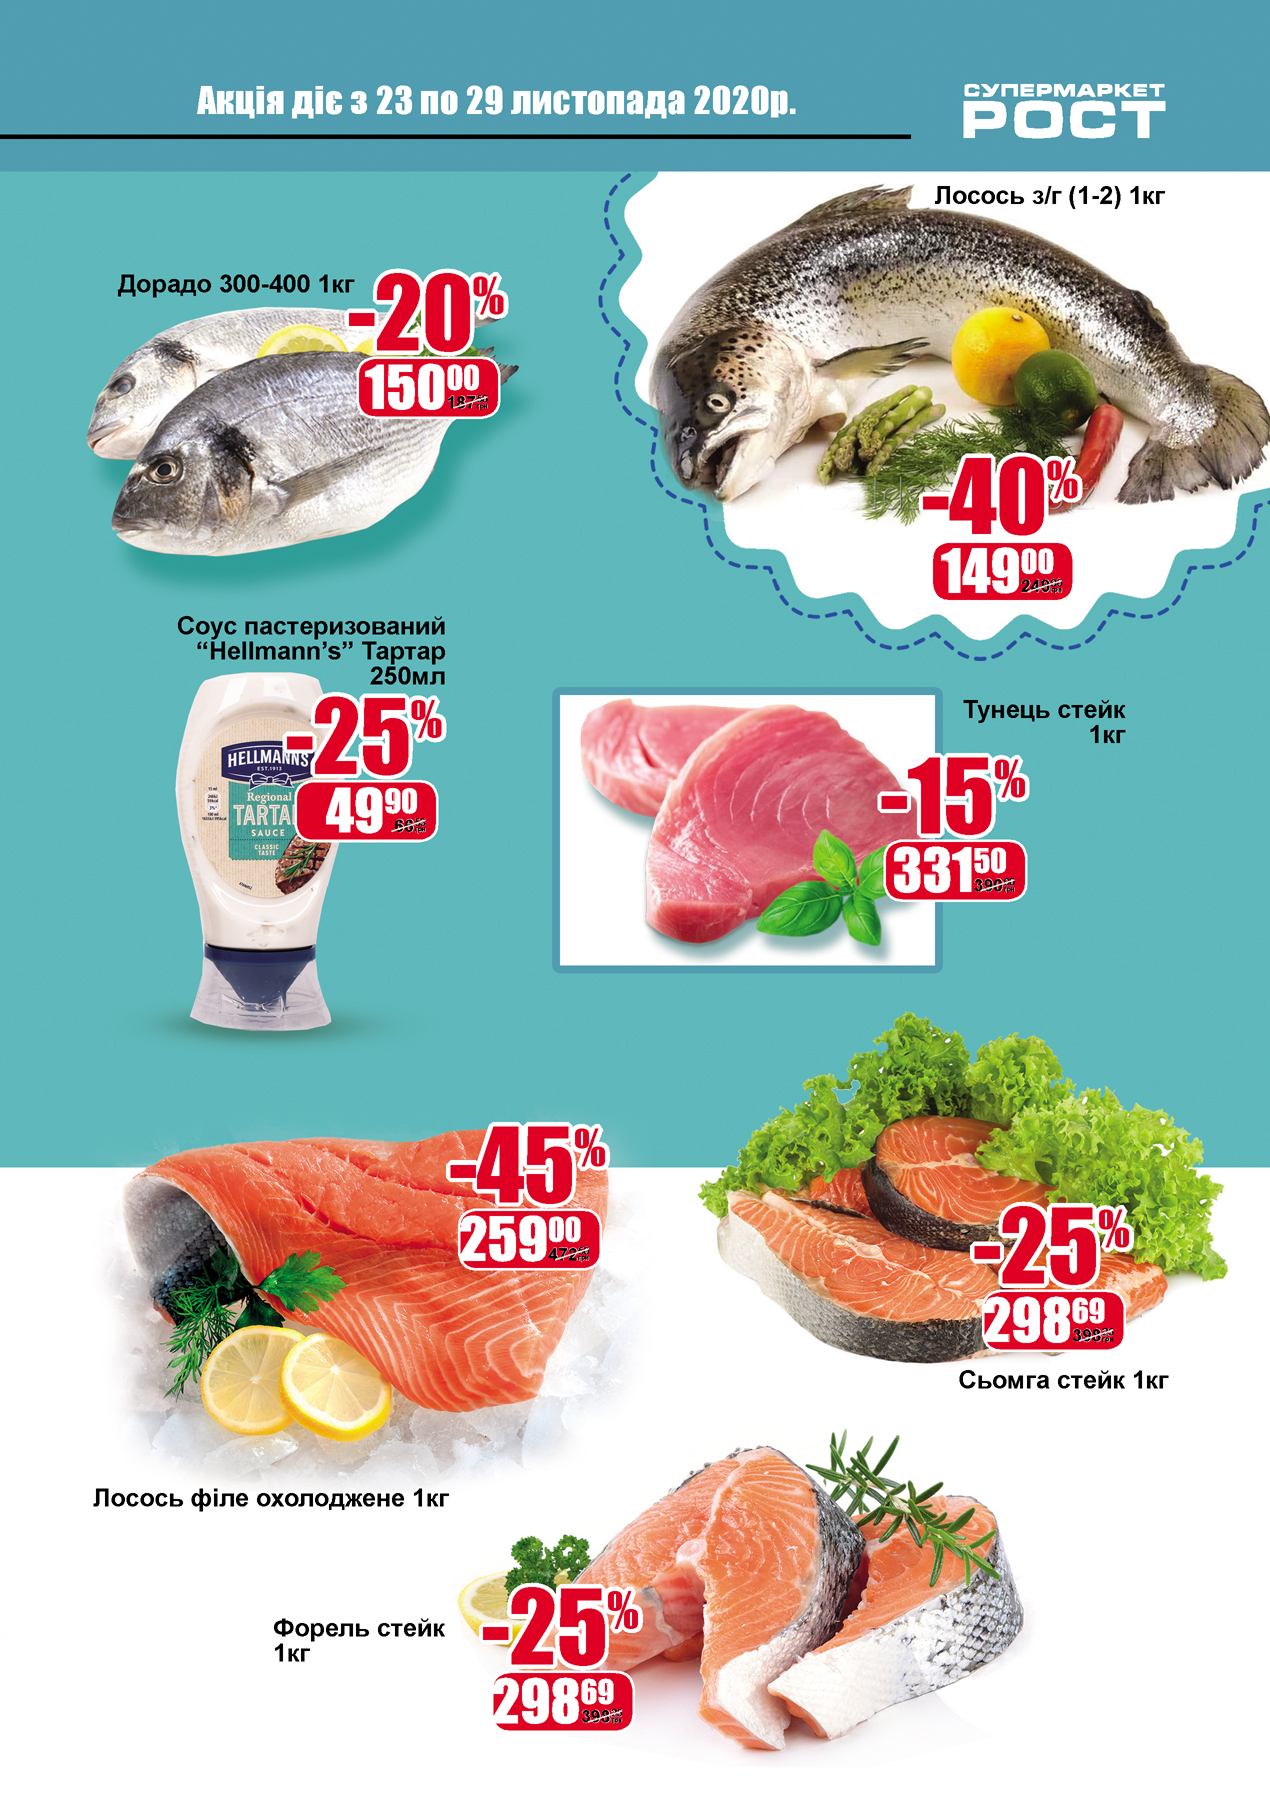 rost_fish_2020_a4_8str_page3